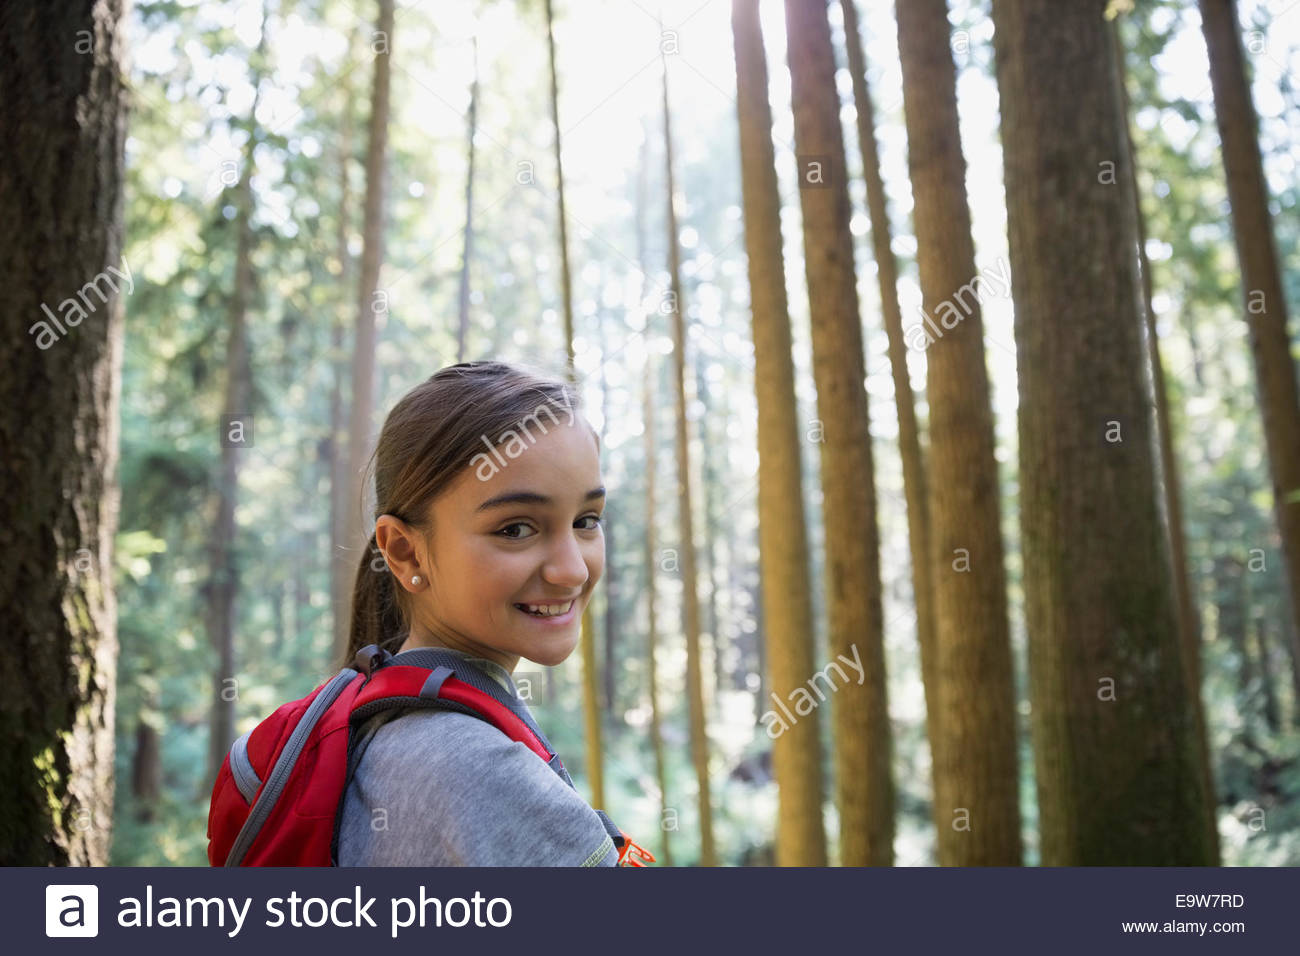 Portrait of smiling girl in woods Photo Stock